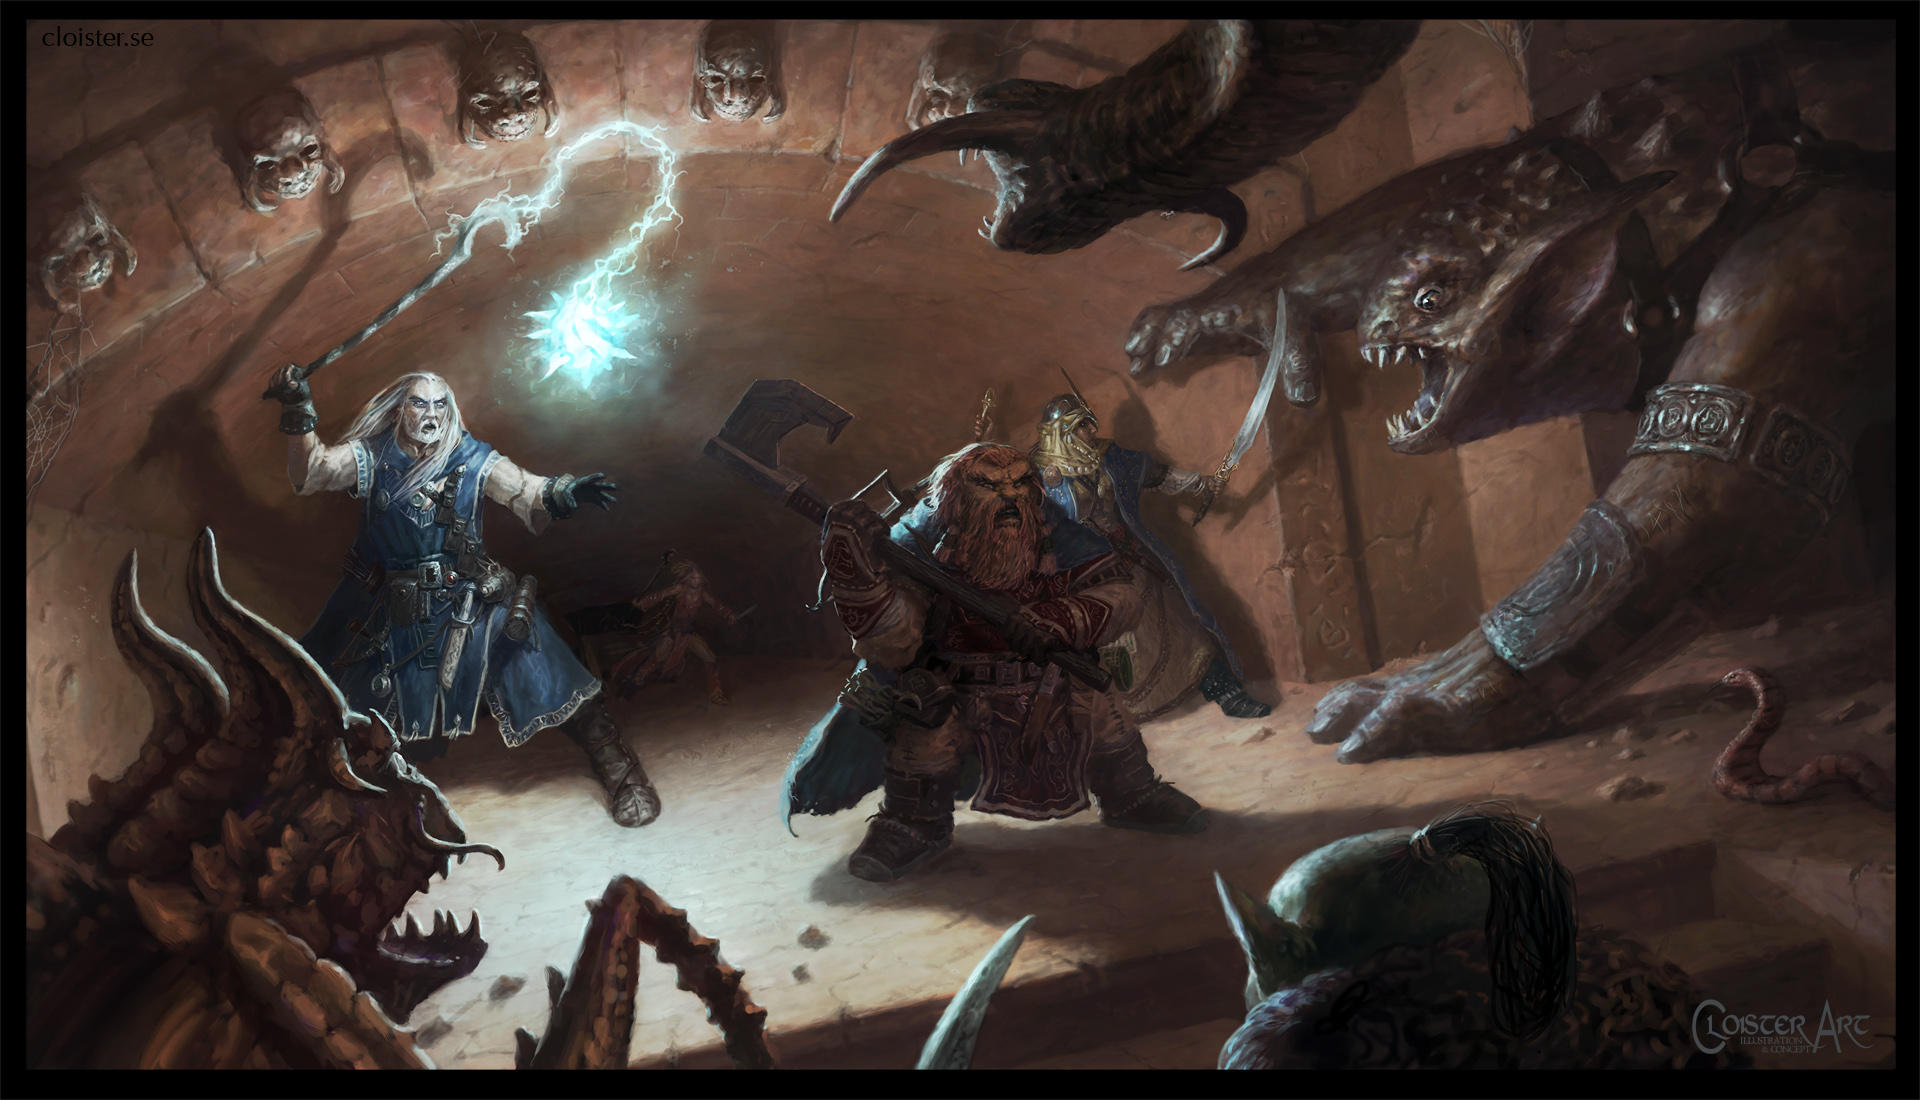 Pathfinder iconics in action (fan art) by Cloister